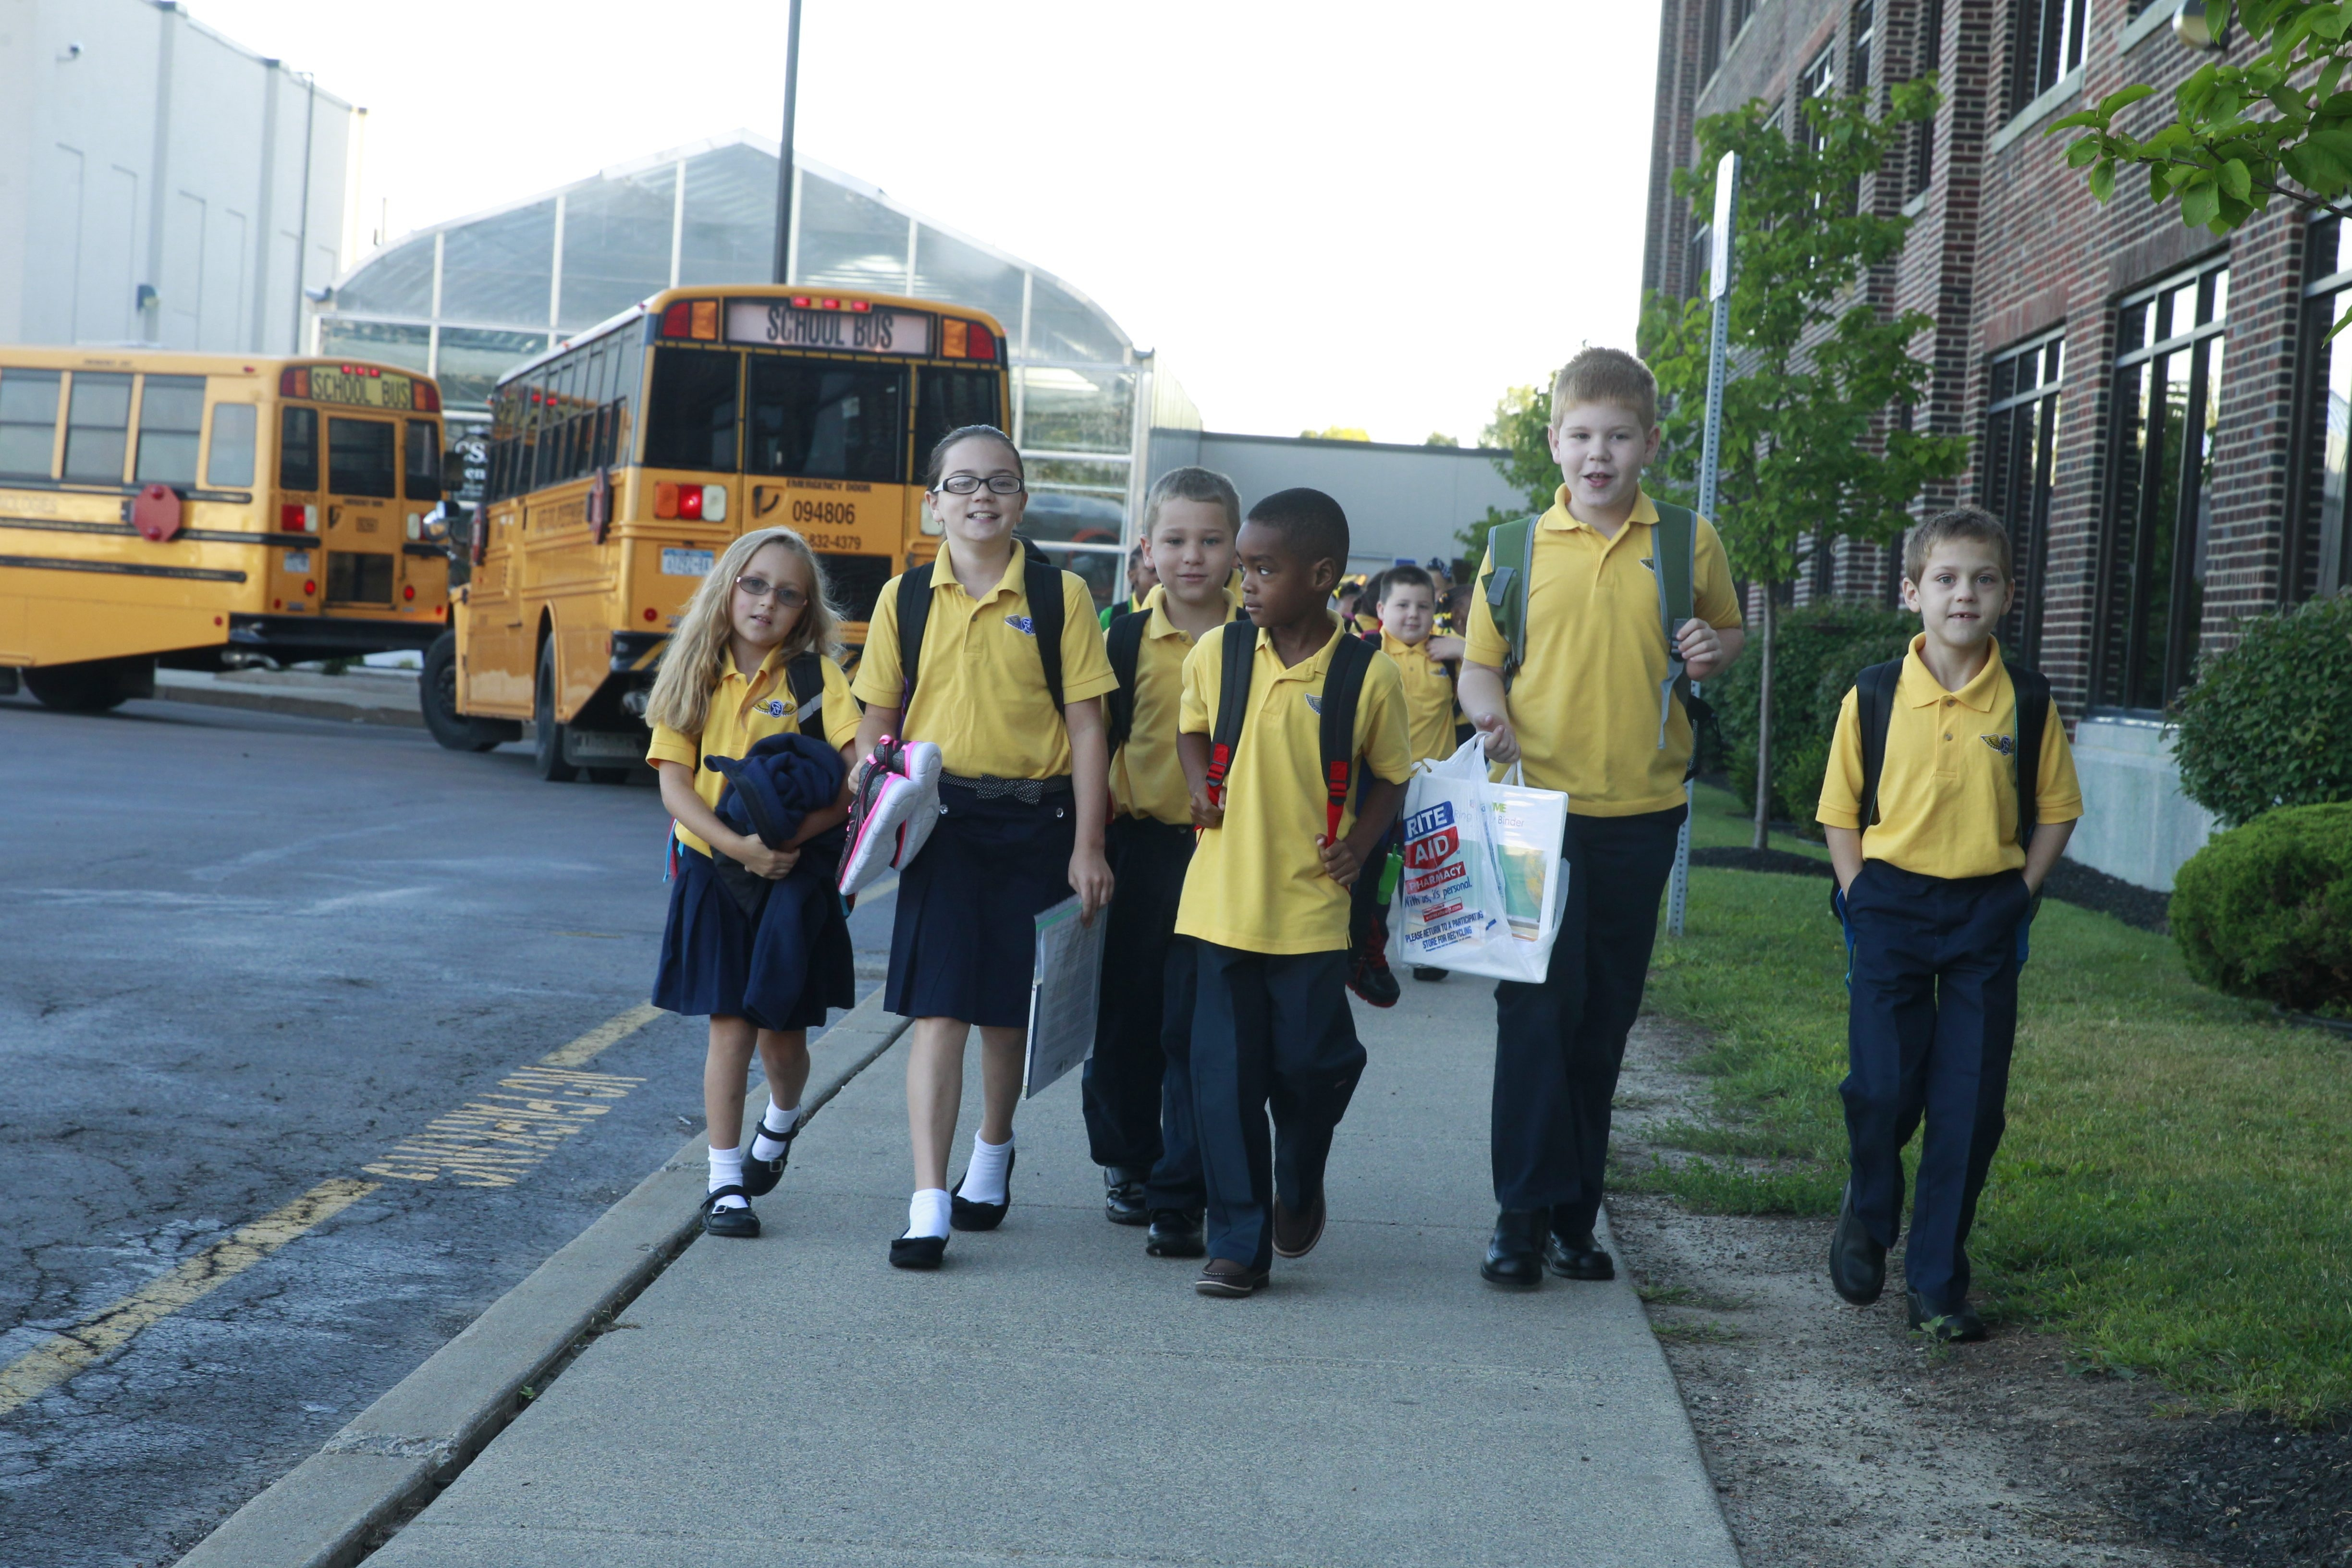 Children arrive on buses for the first day of school Monday at the Charter School for Applied Technologies on Kenmore Avenue in the Town of Tonawanda.